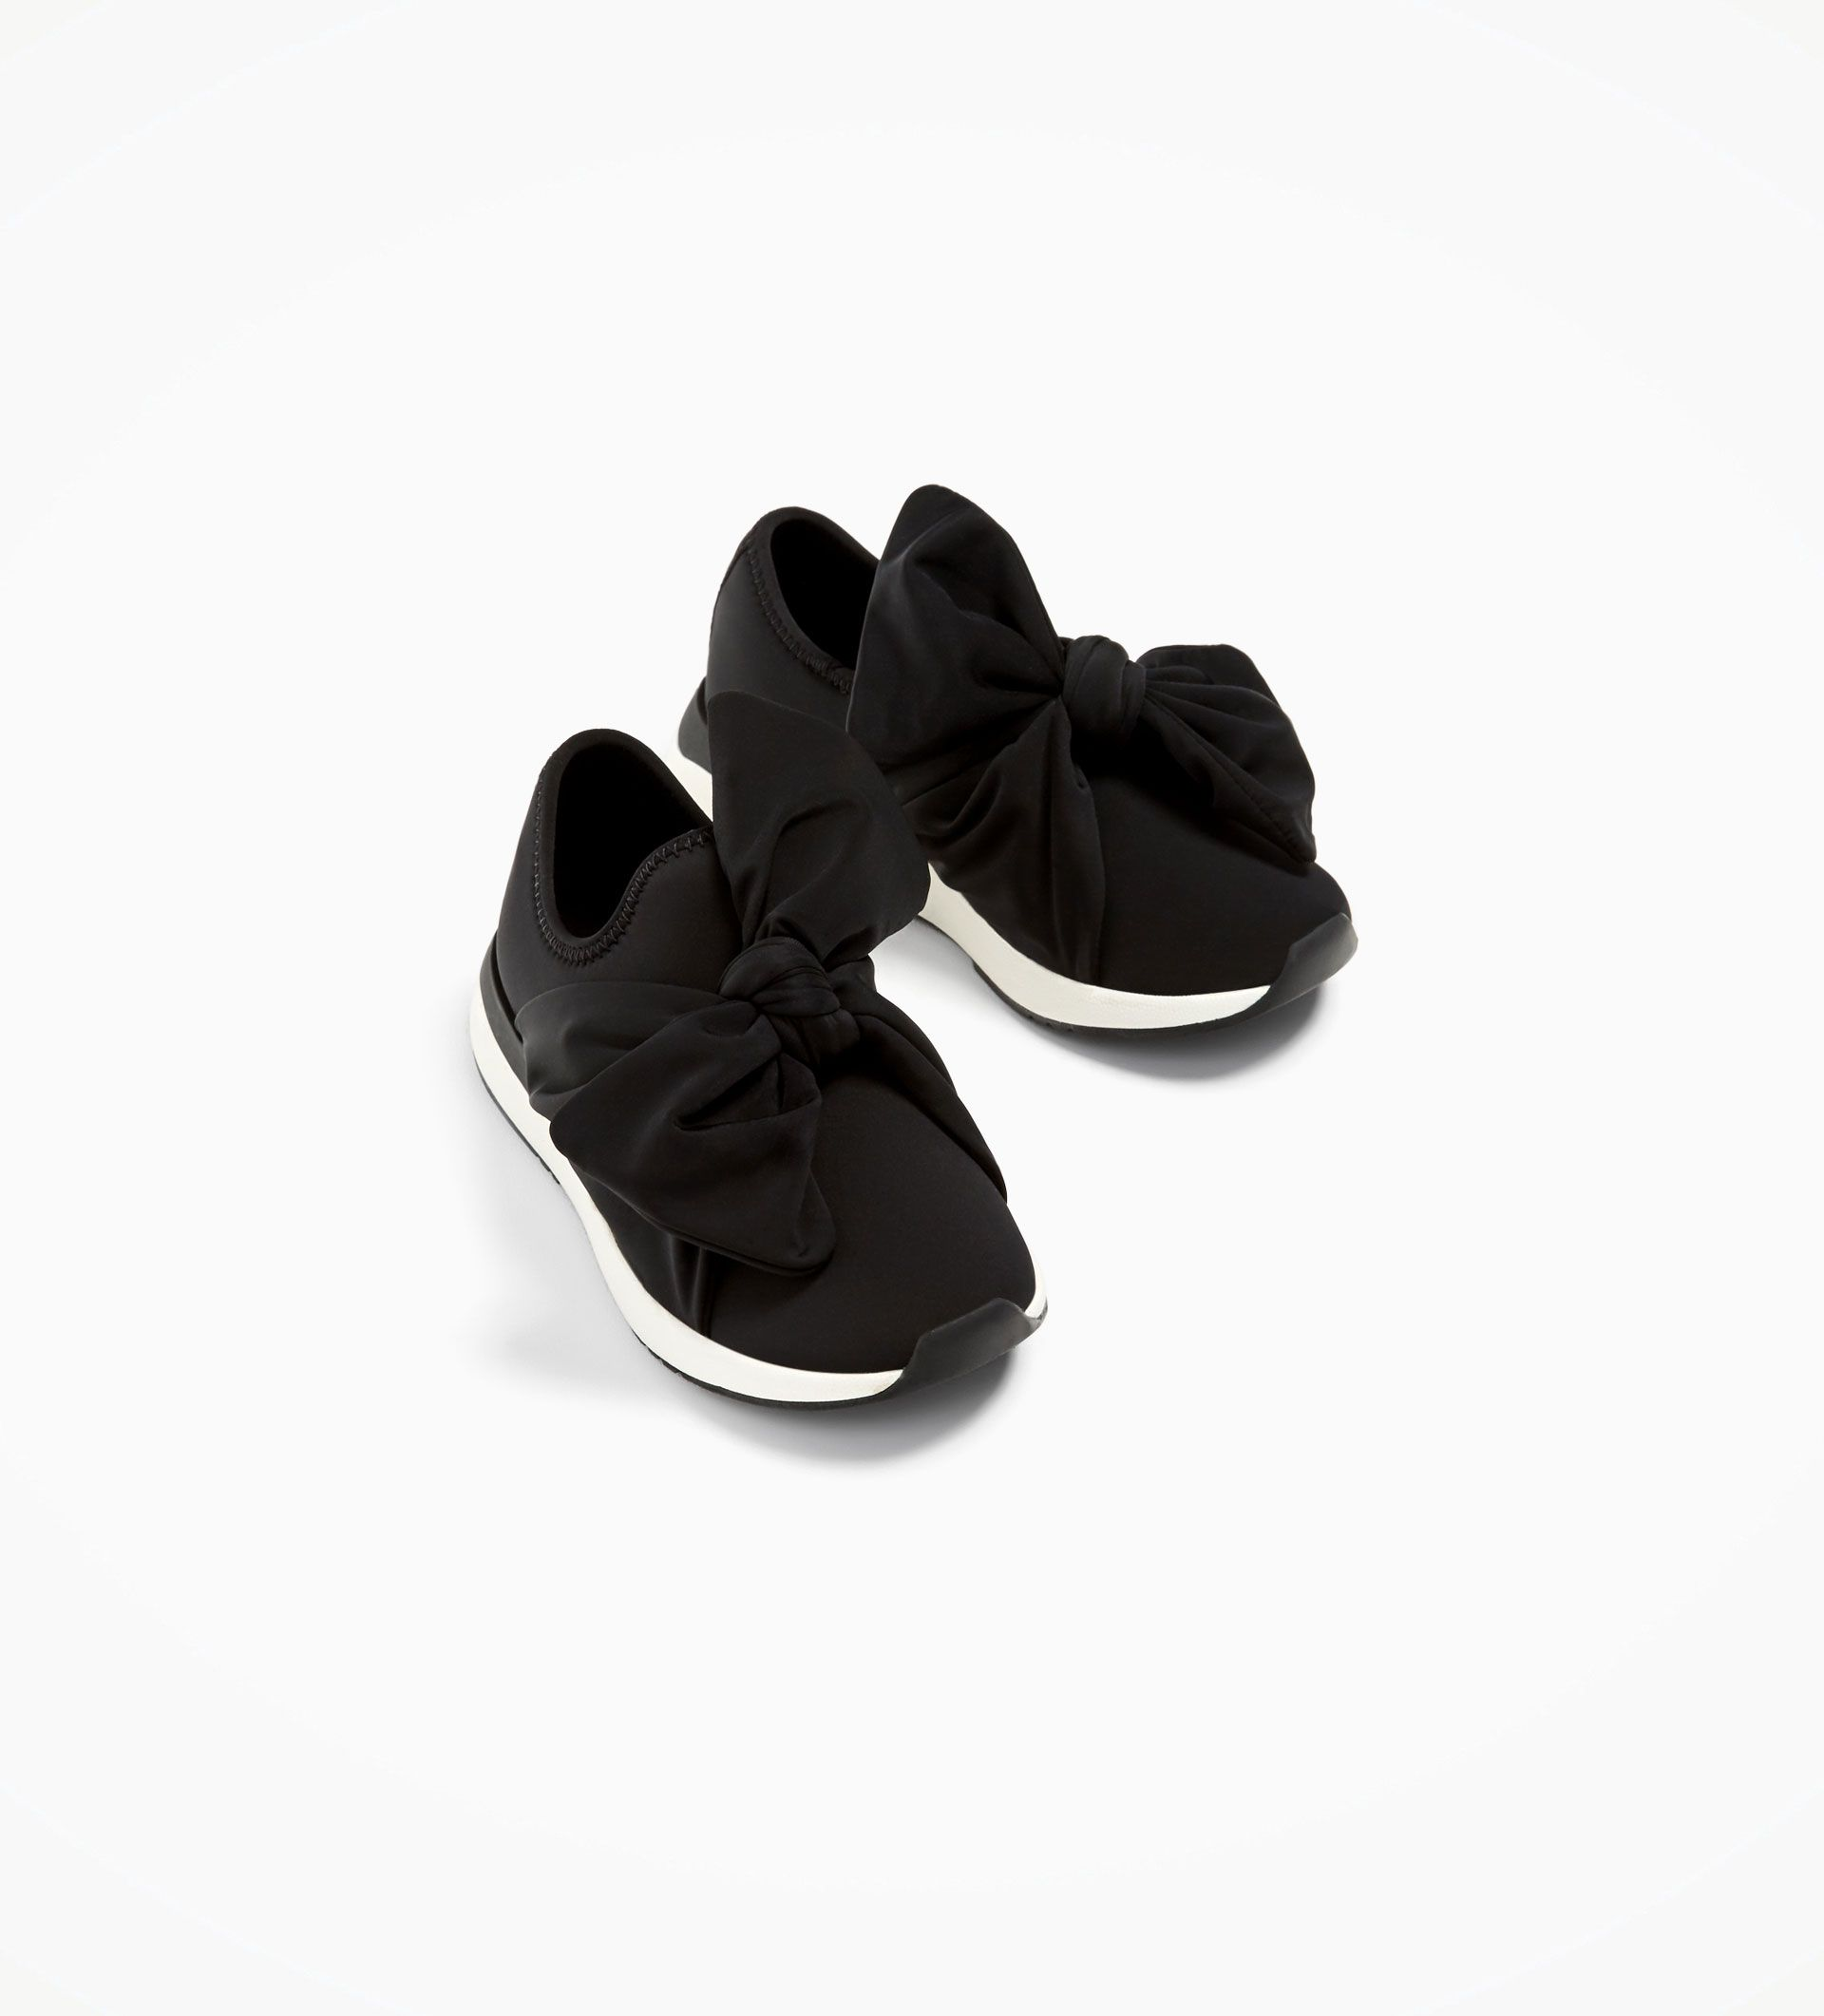 BOWS from Zara | Sneakers, Girls shoes